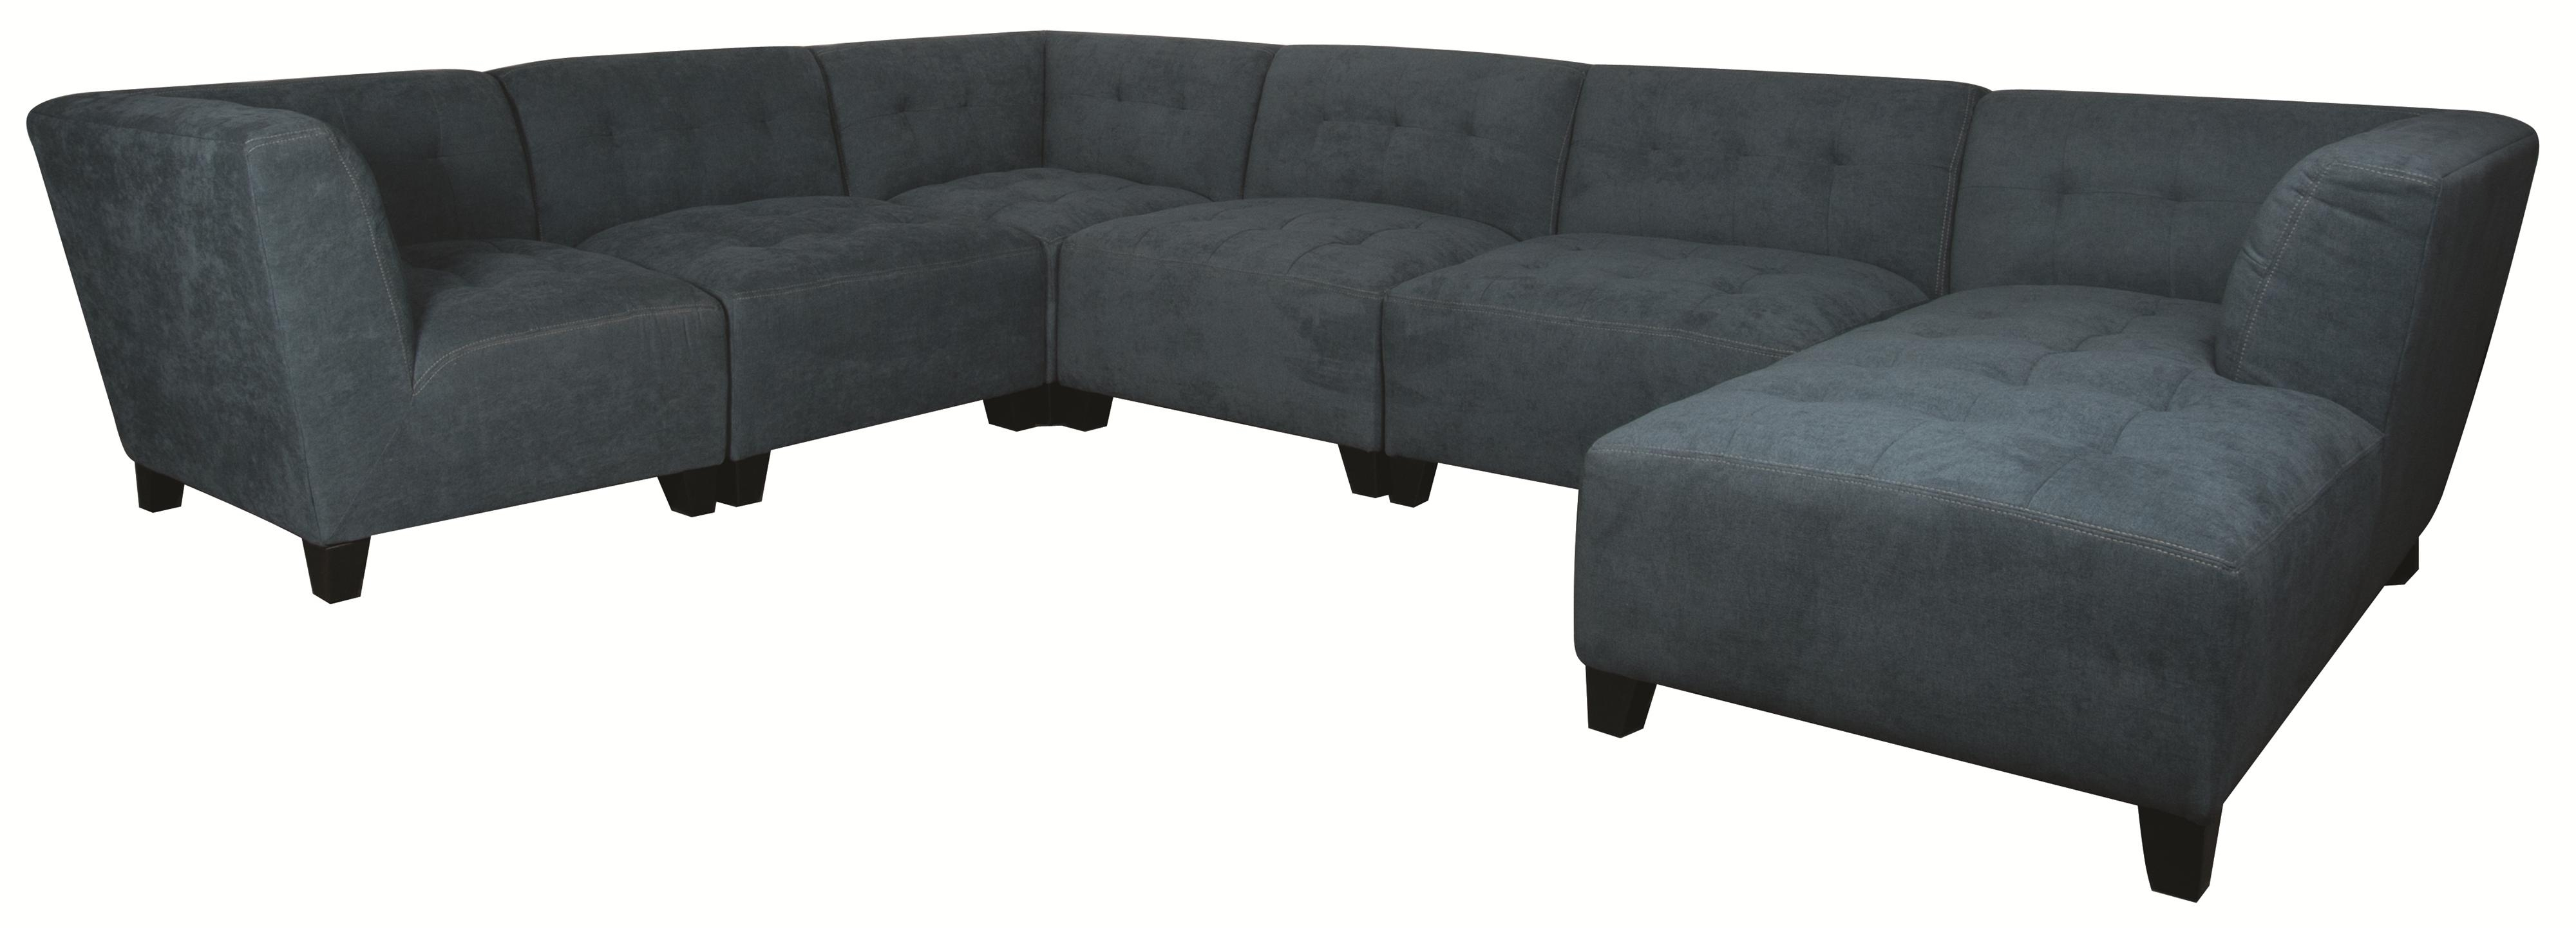 Emerson 6 Piece Sectional Sofa – Morris Home Furnishings – Sofa For Dayton Ohio Sectional Sofas (Image 4 of 10)